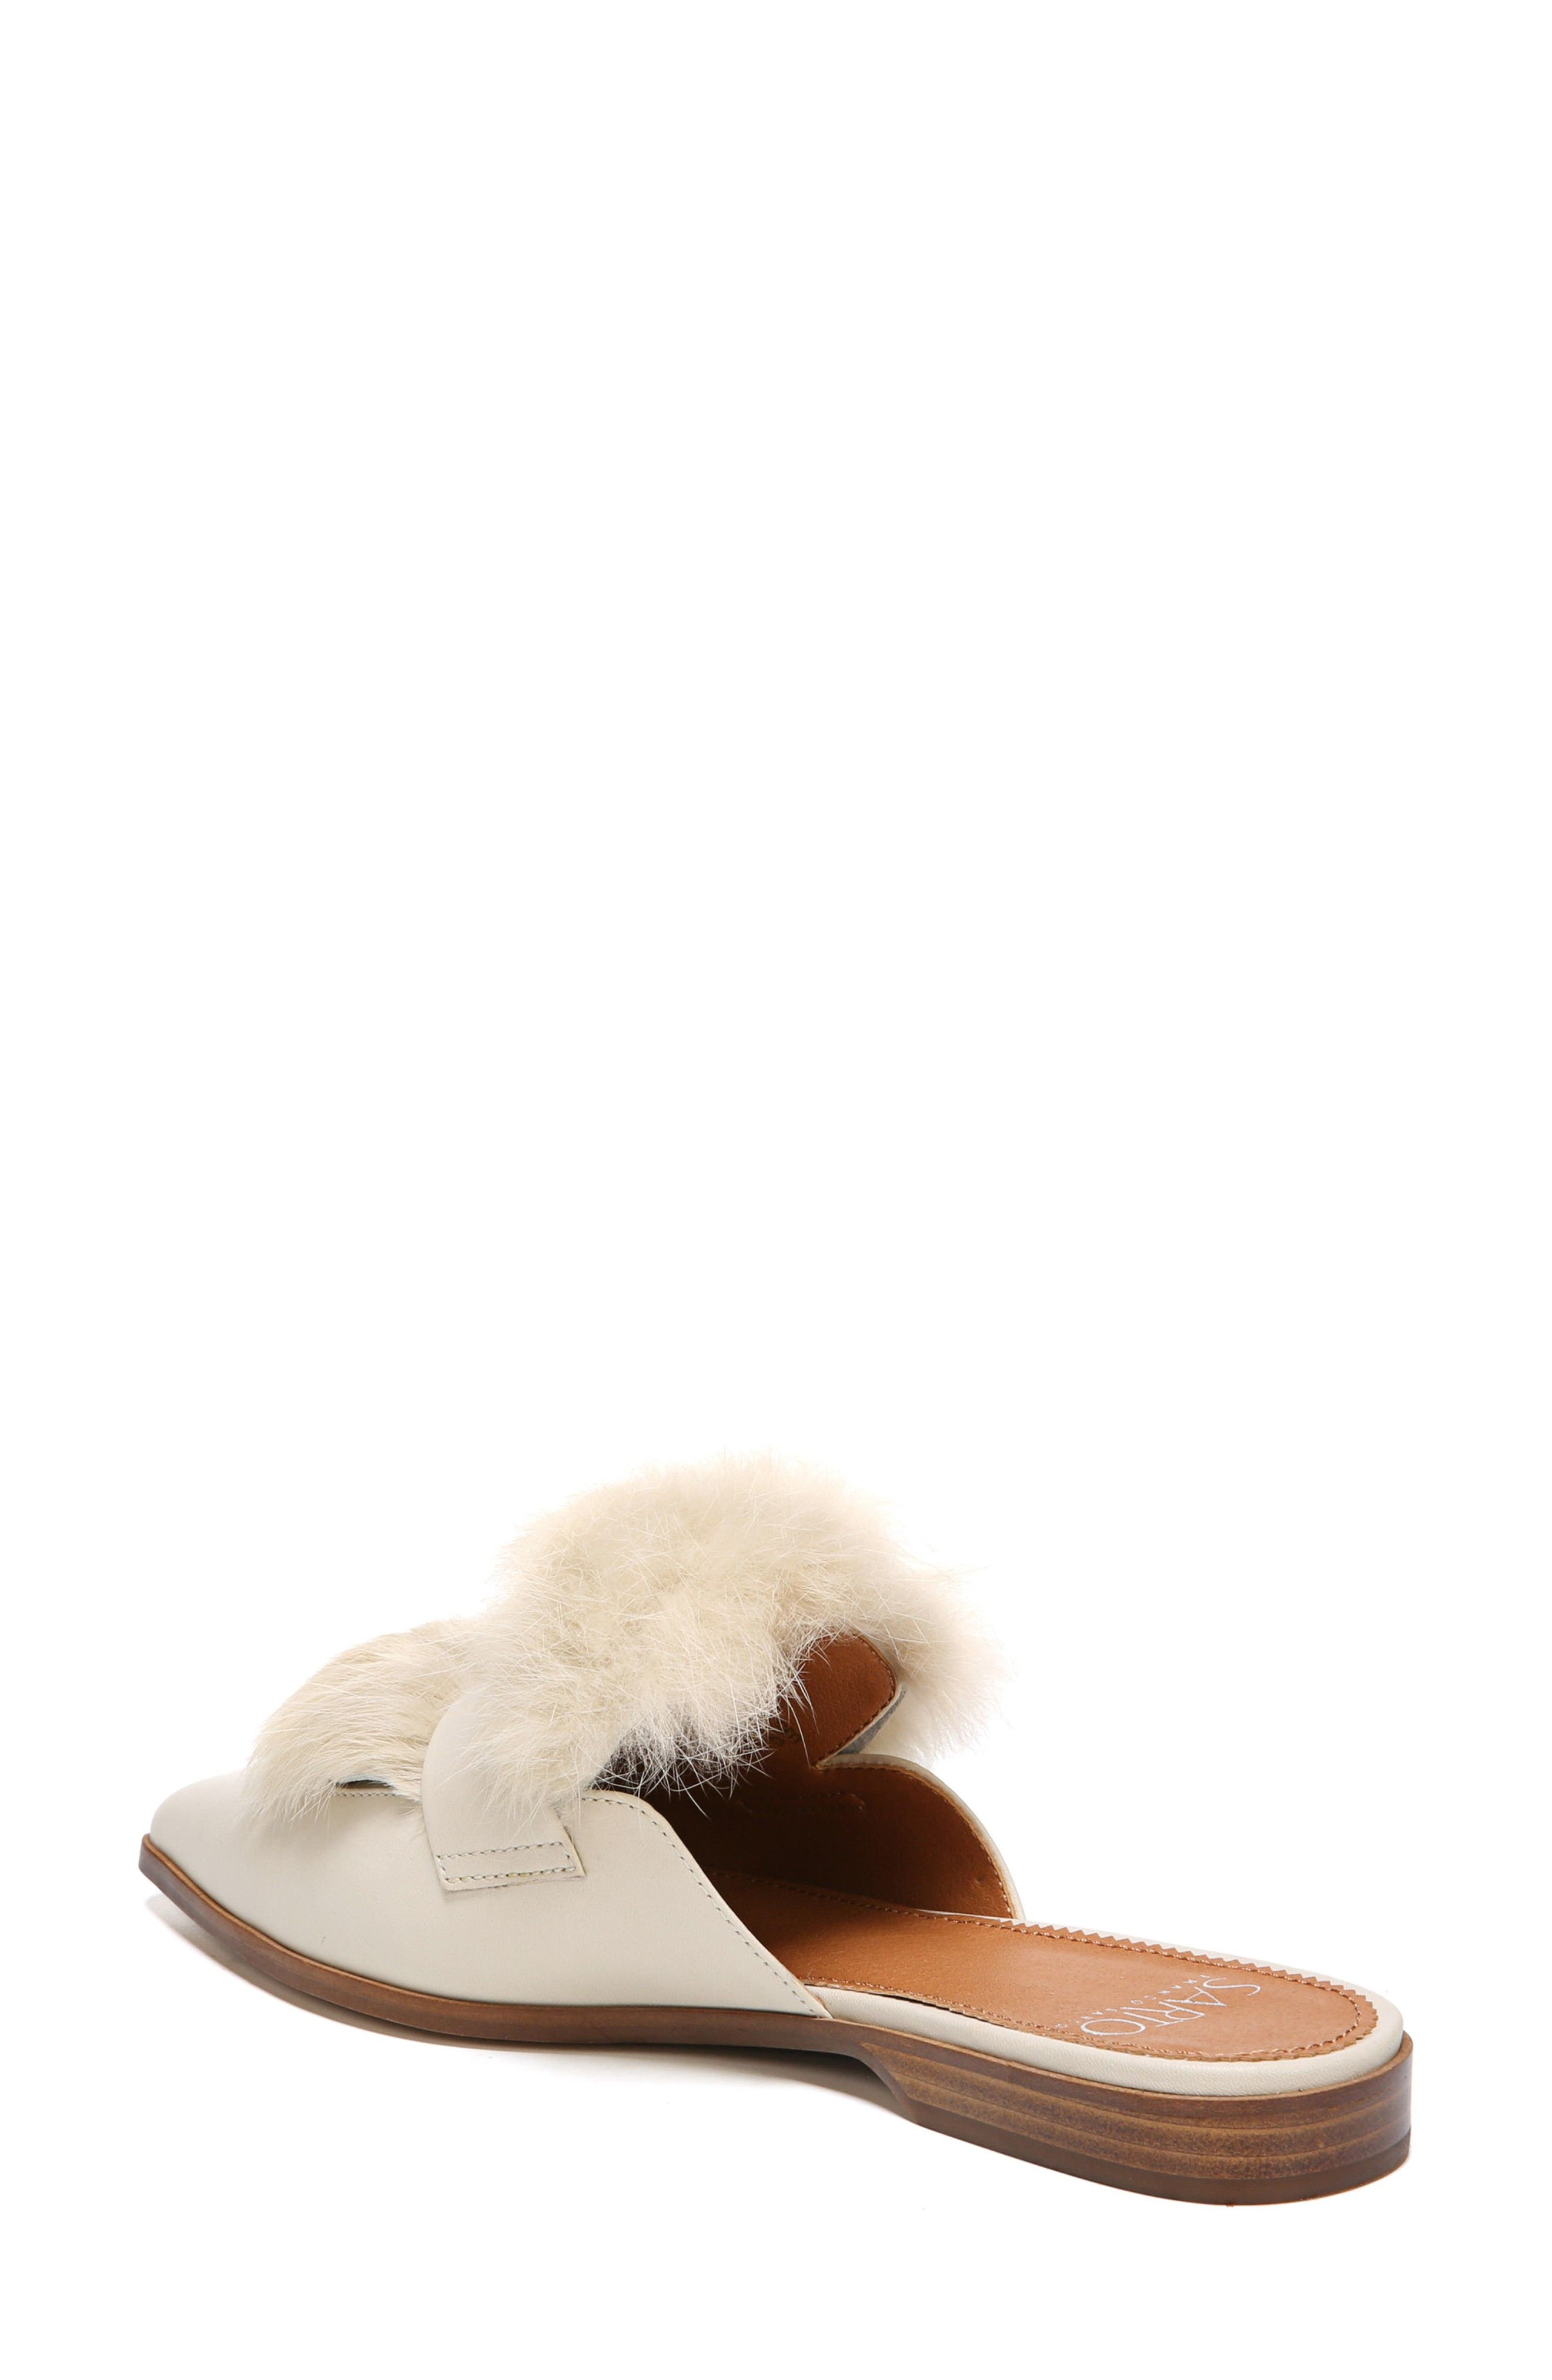 Palmer II Genuine Rabbit Fur Slide,                             Alternate thumbnail 2, color,                             Winter White Leather